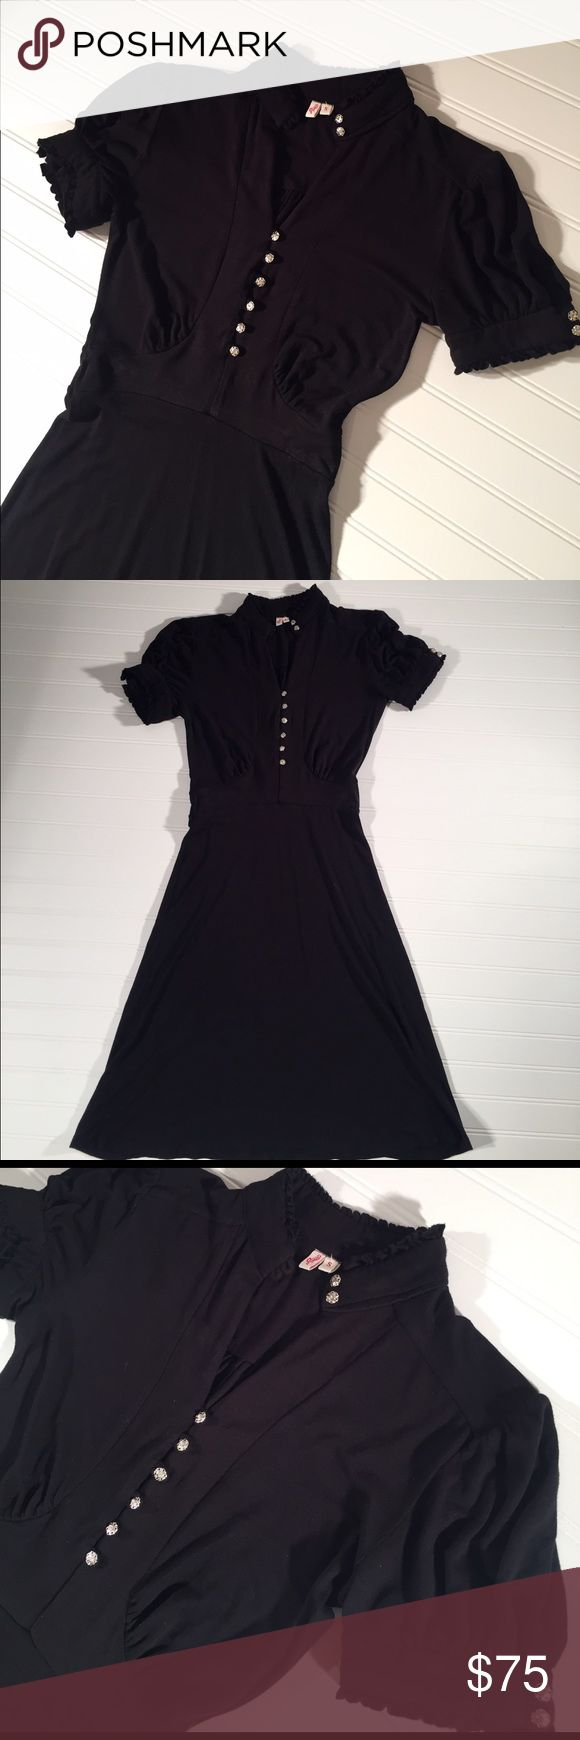 Joie Dress in Black Joie Dress in Black. Excellent condition! Timeless. Comfortable and super flattering as there's some stretch to it (92% rayon, 8% spandex) Joie Dresses